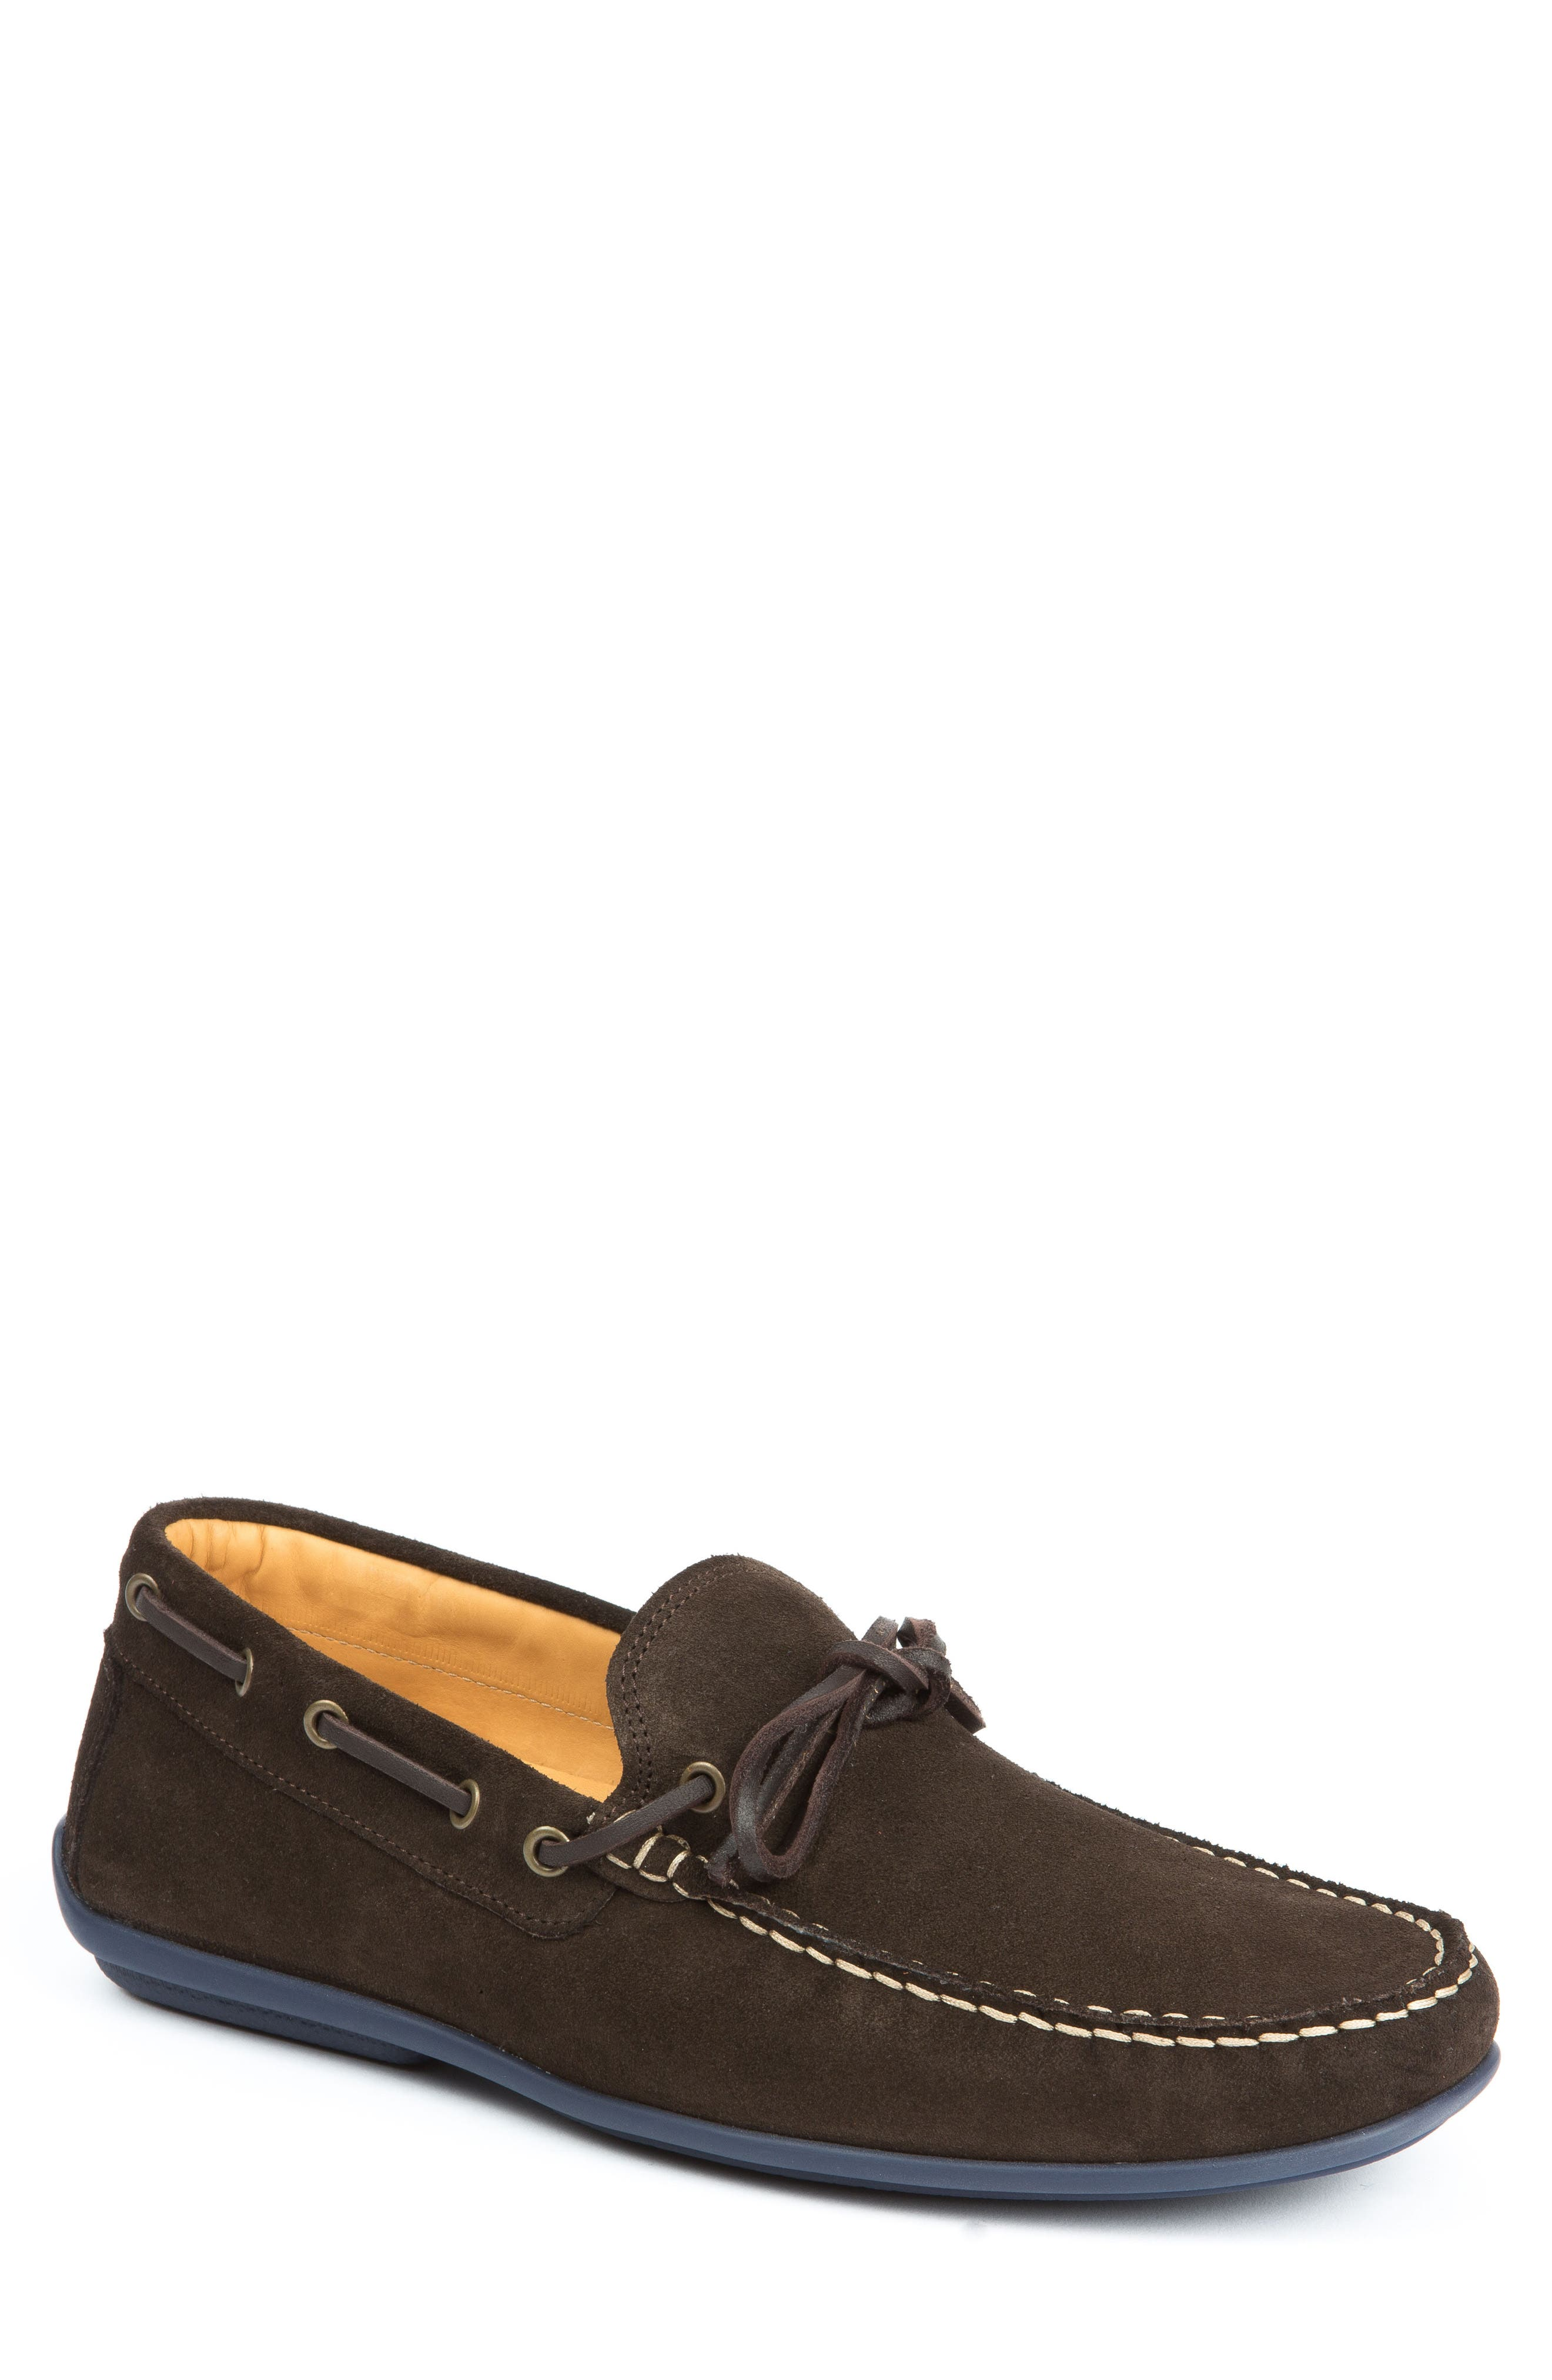 Kingstons Driving Shoe,                             Main thumbnail 1, color,                             Brown Suede